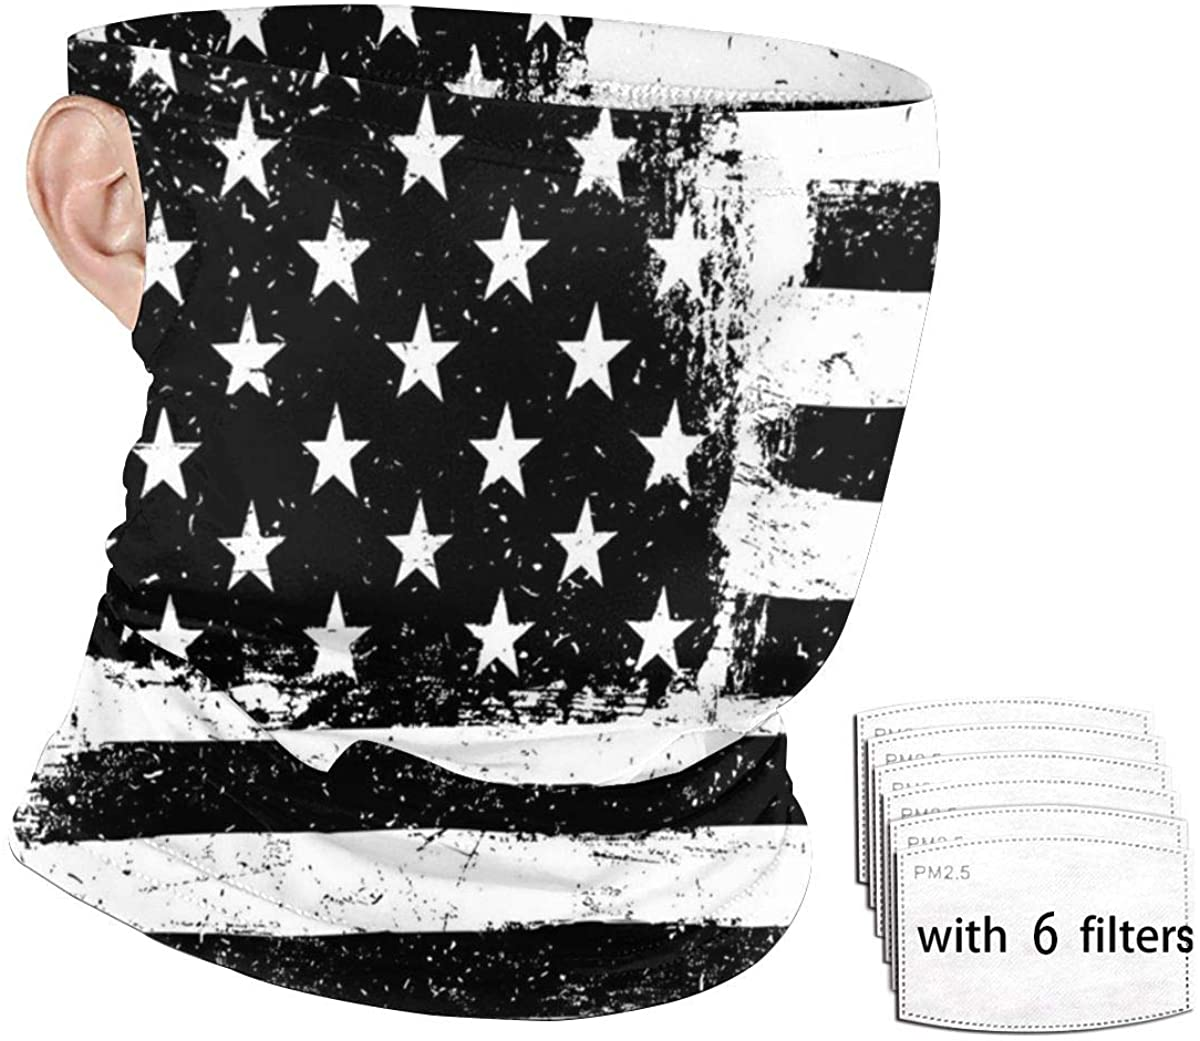 Black And White American Flag Seamless Bandana Face Mask Scarf Ear Loops with 6 Filters, Anti-Dust Neck Gaiter Headband Windproof Headwear Balaclava for Fishing Shopping